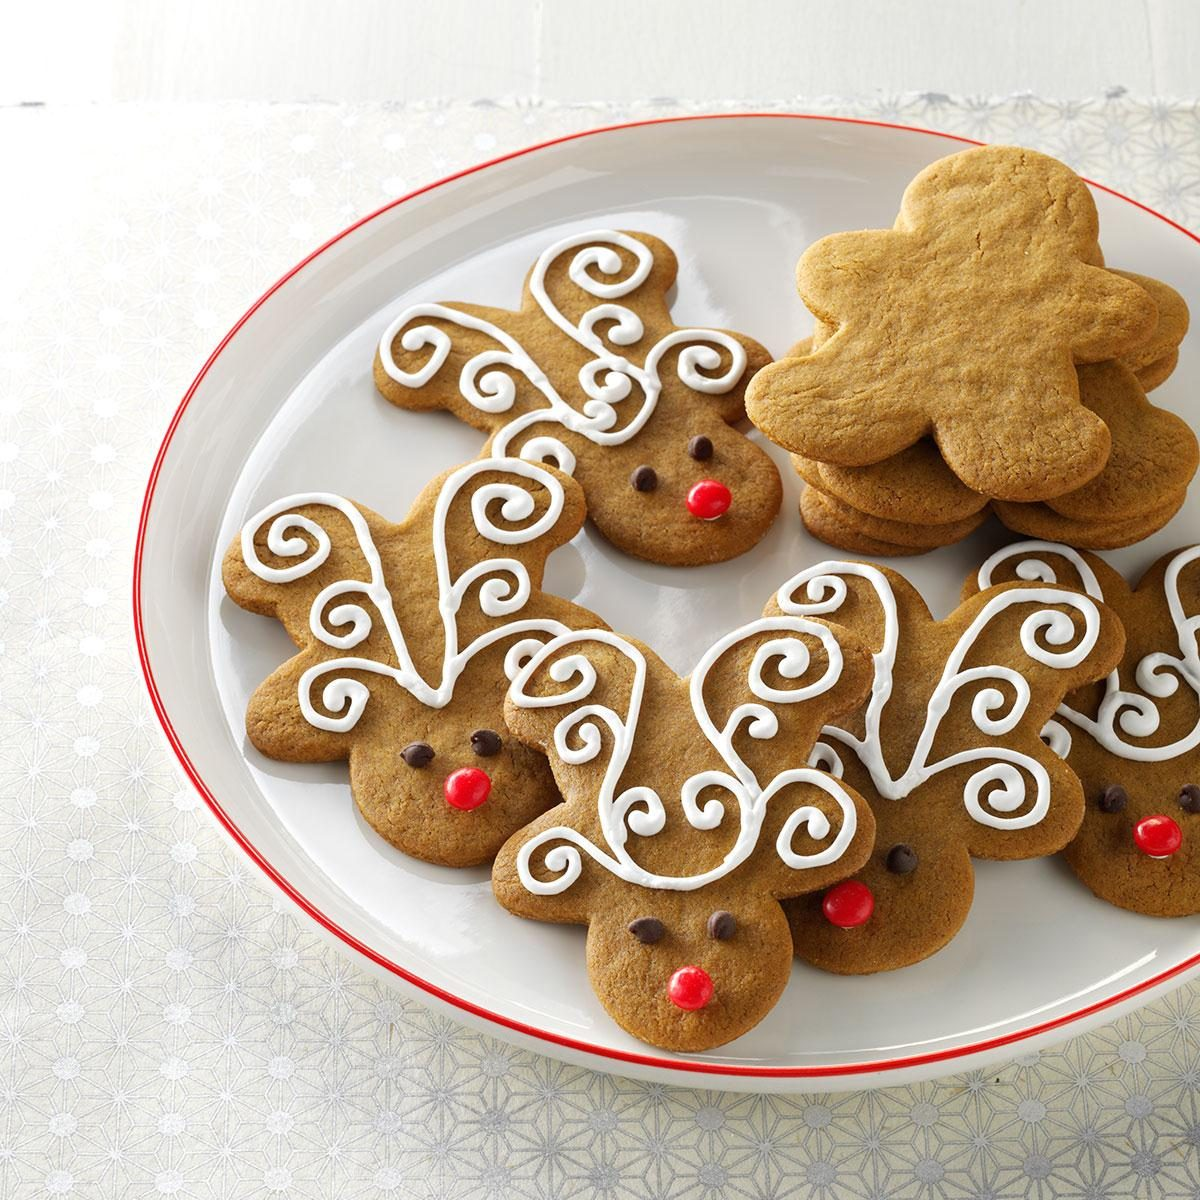 Jolly Ginger Reindeer Cookies Recipe | Taste of Home